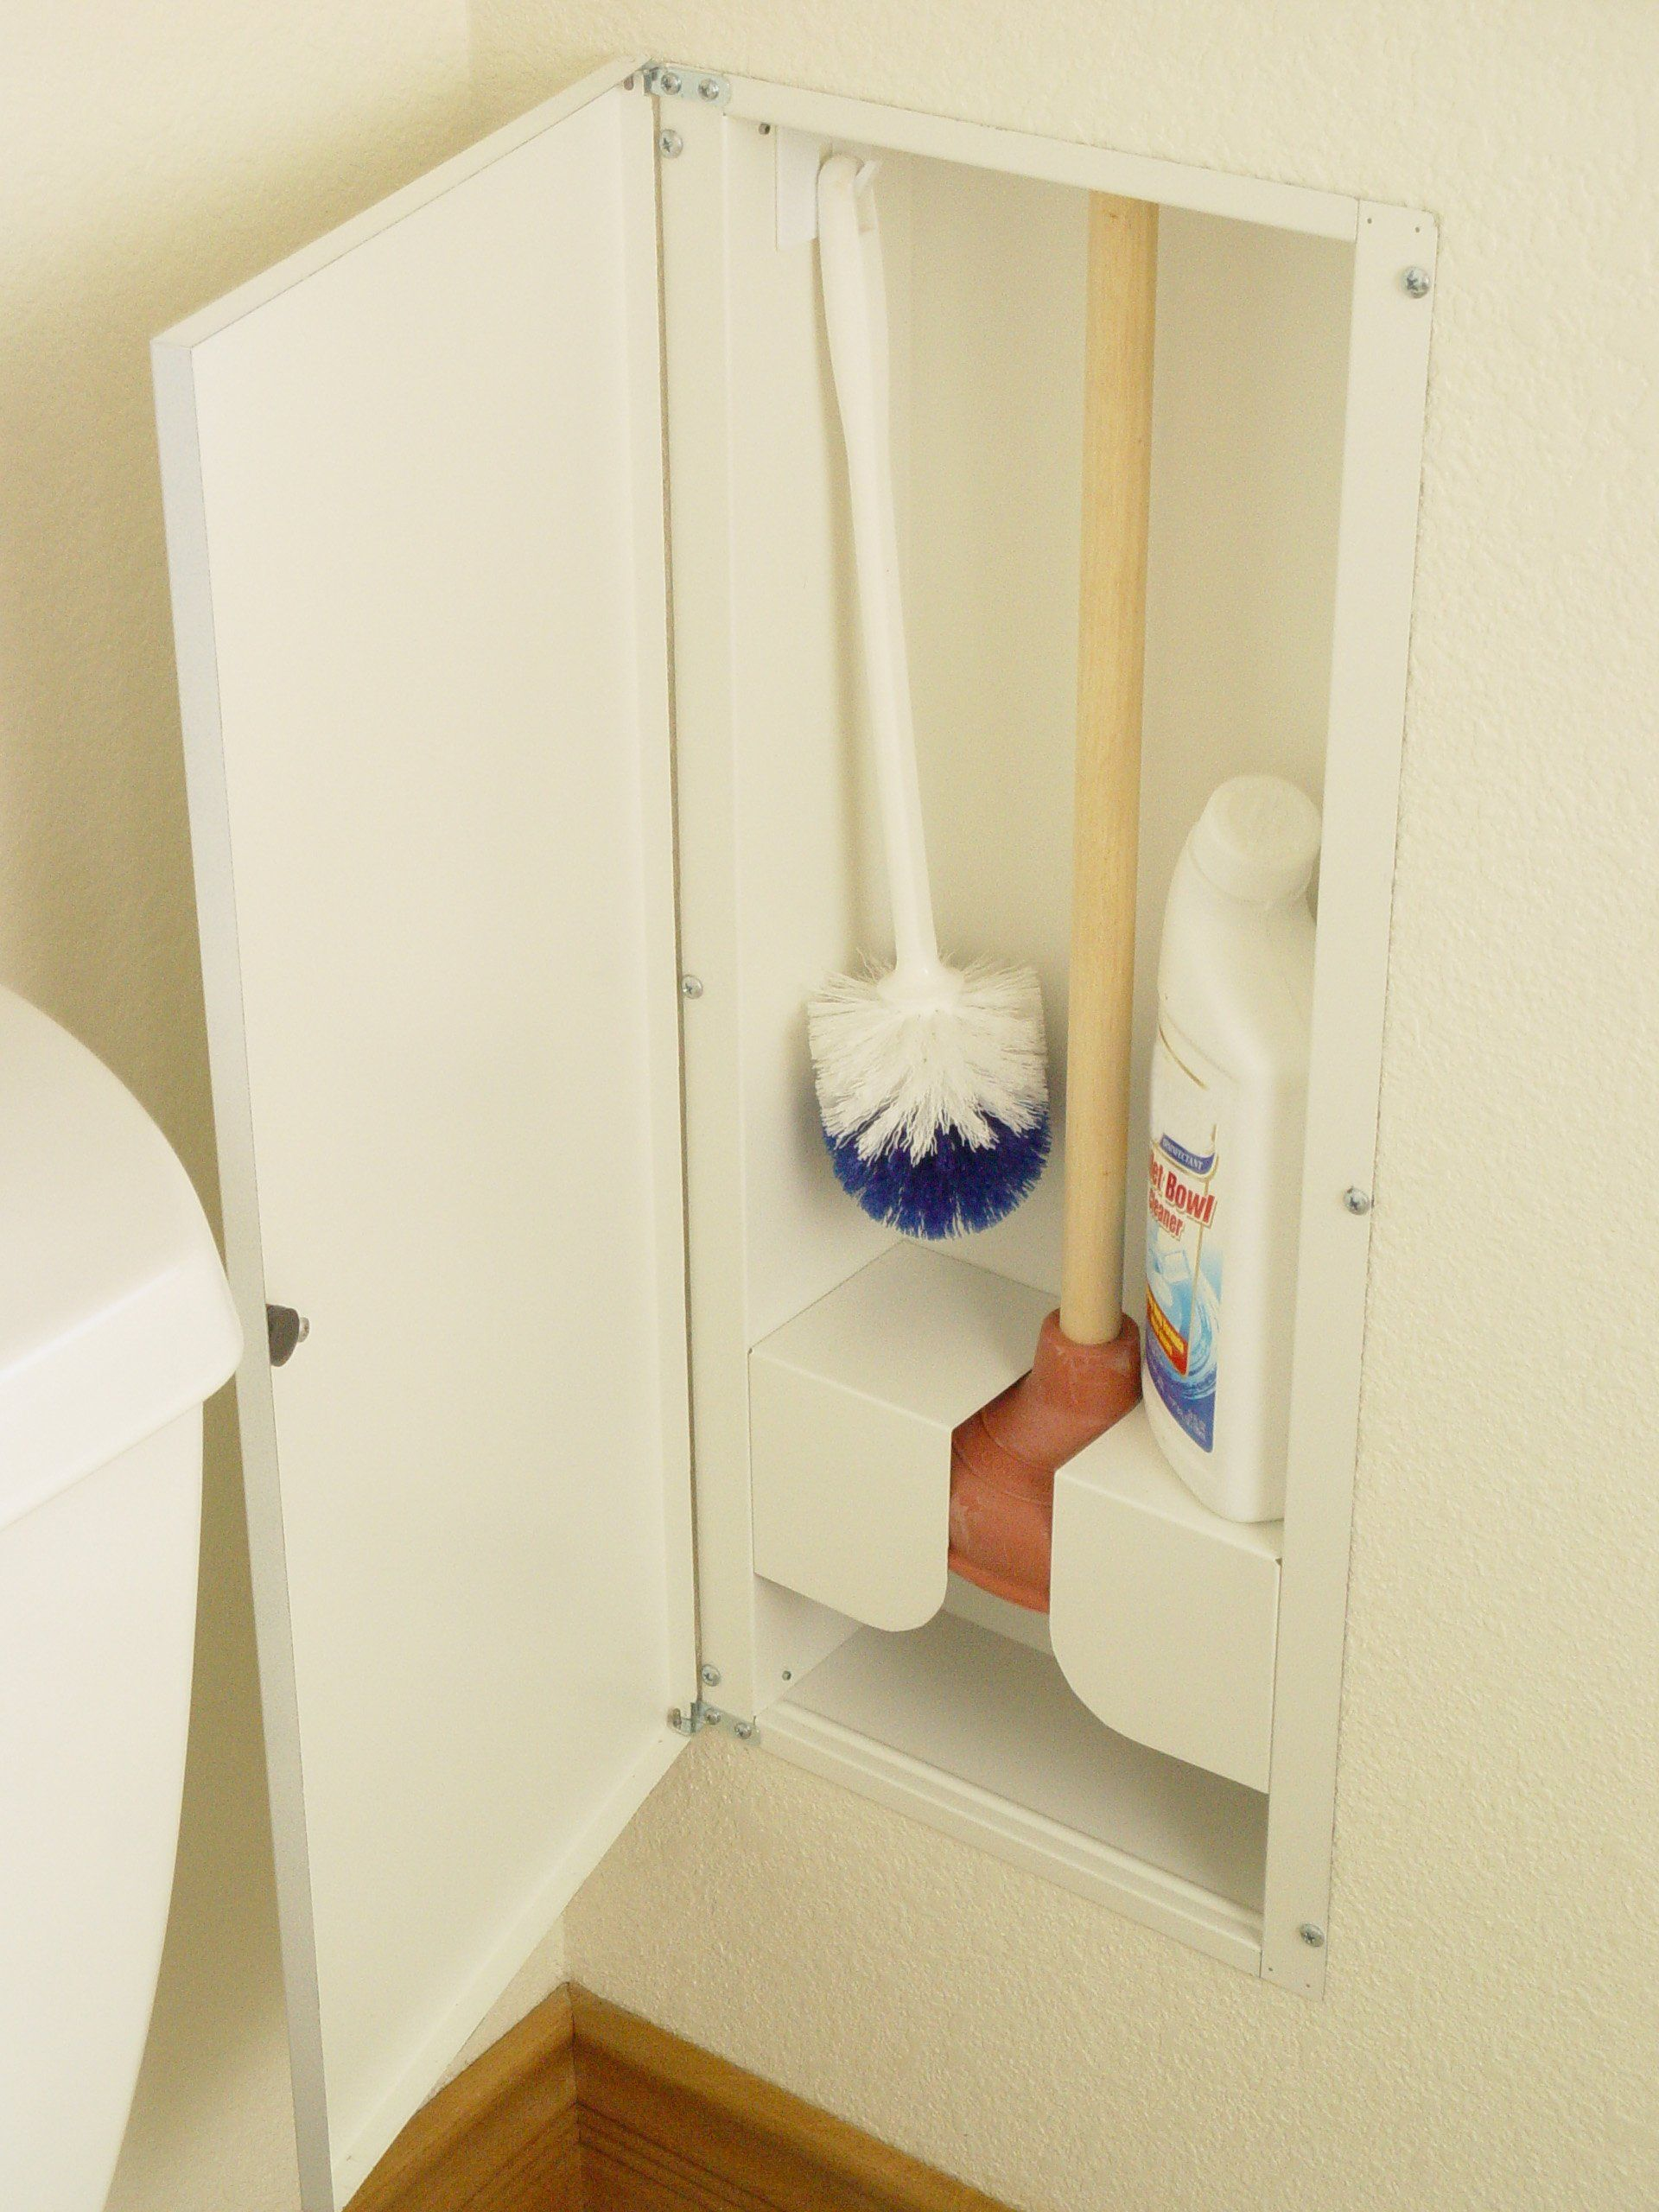 Home Depot S Online As Well Hy Dit 100 Toilet Plunger Storage Kit